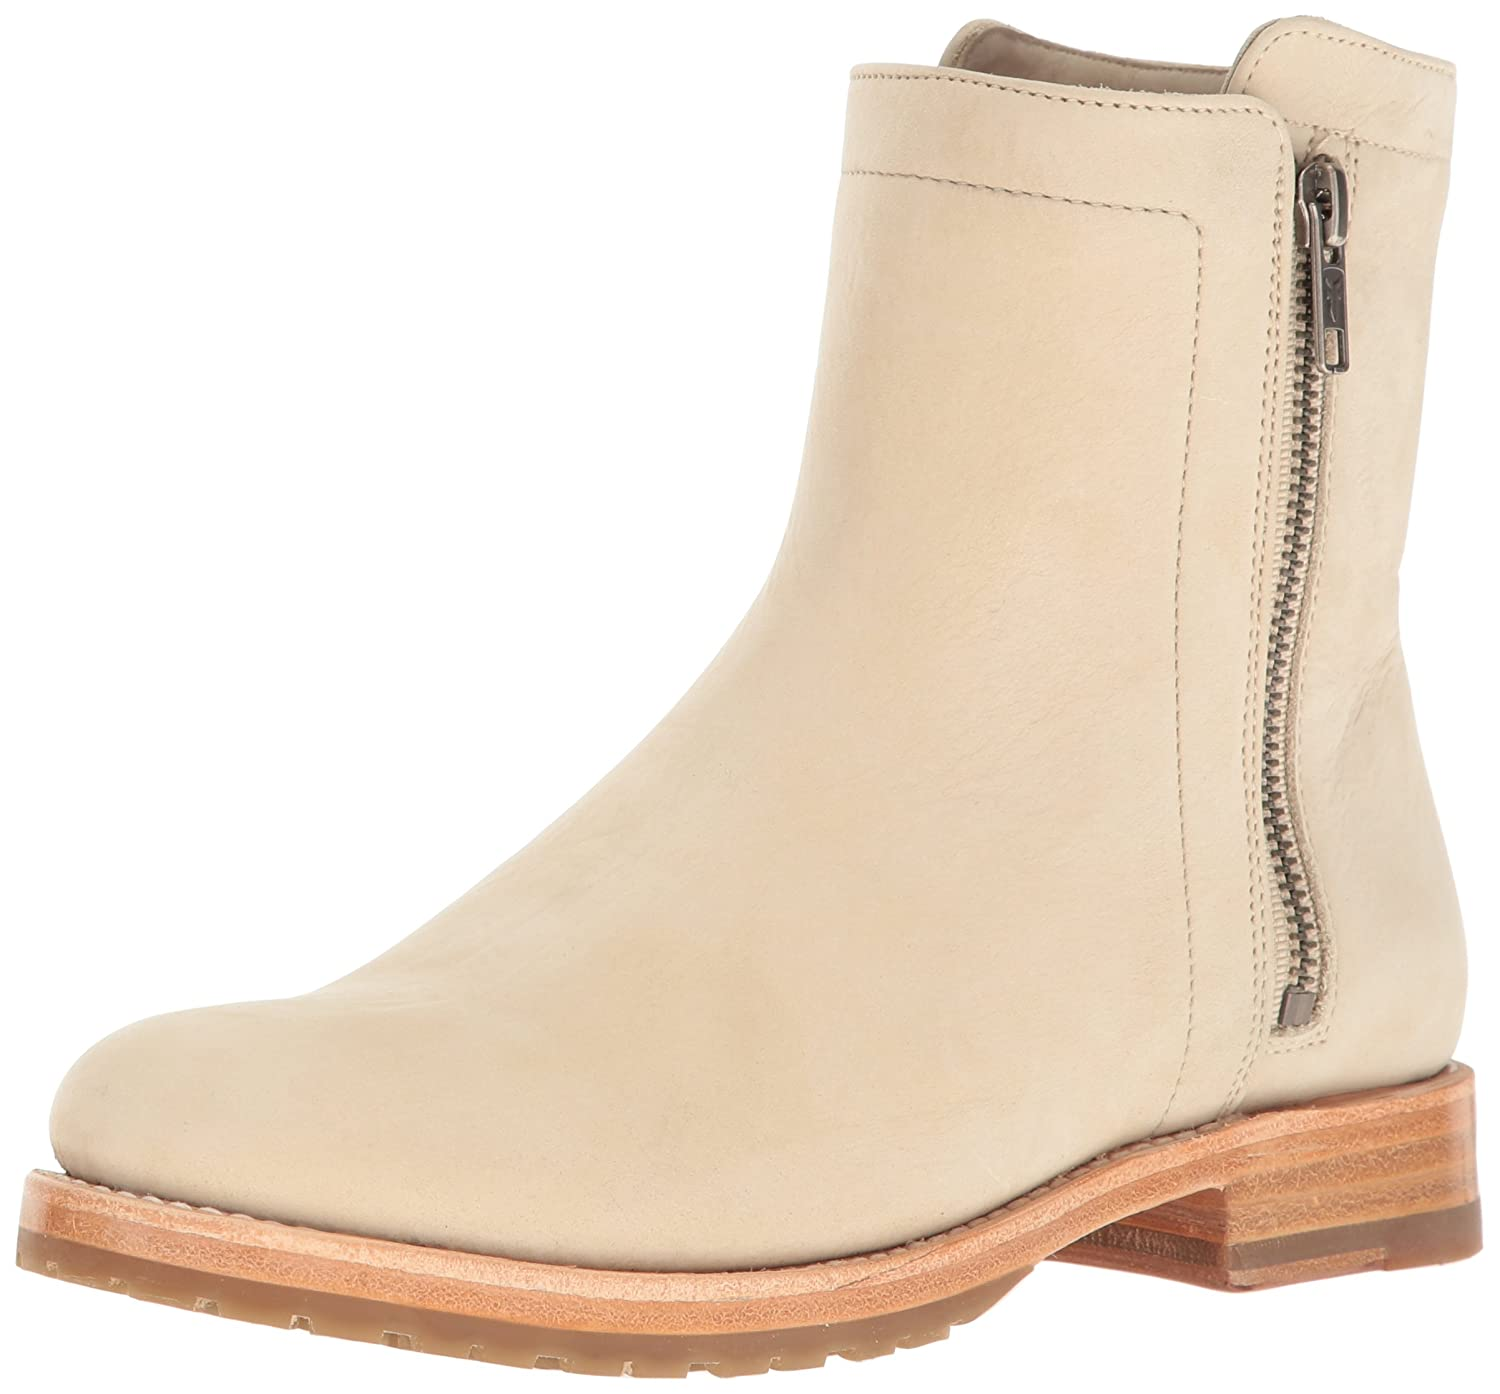 FRYE Women's Natalie Double Zip Boot B01H4XBHU2 5.5 B(M) US|Ivory